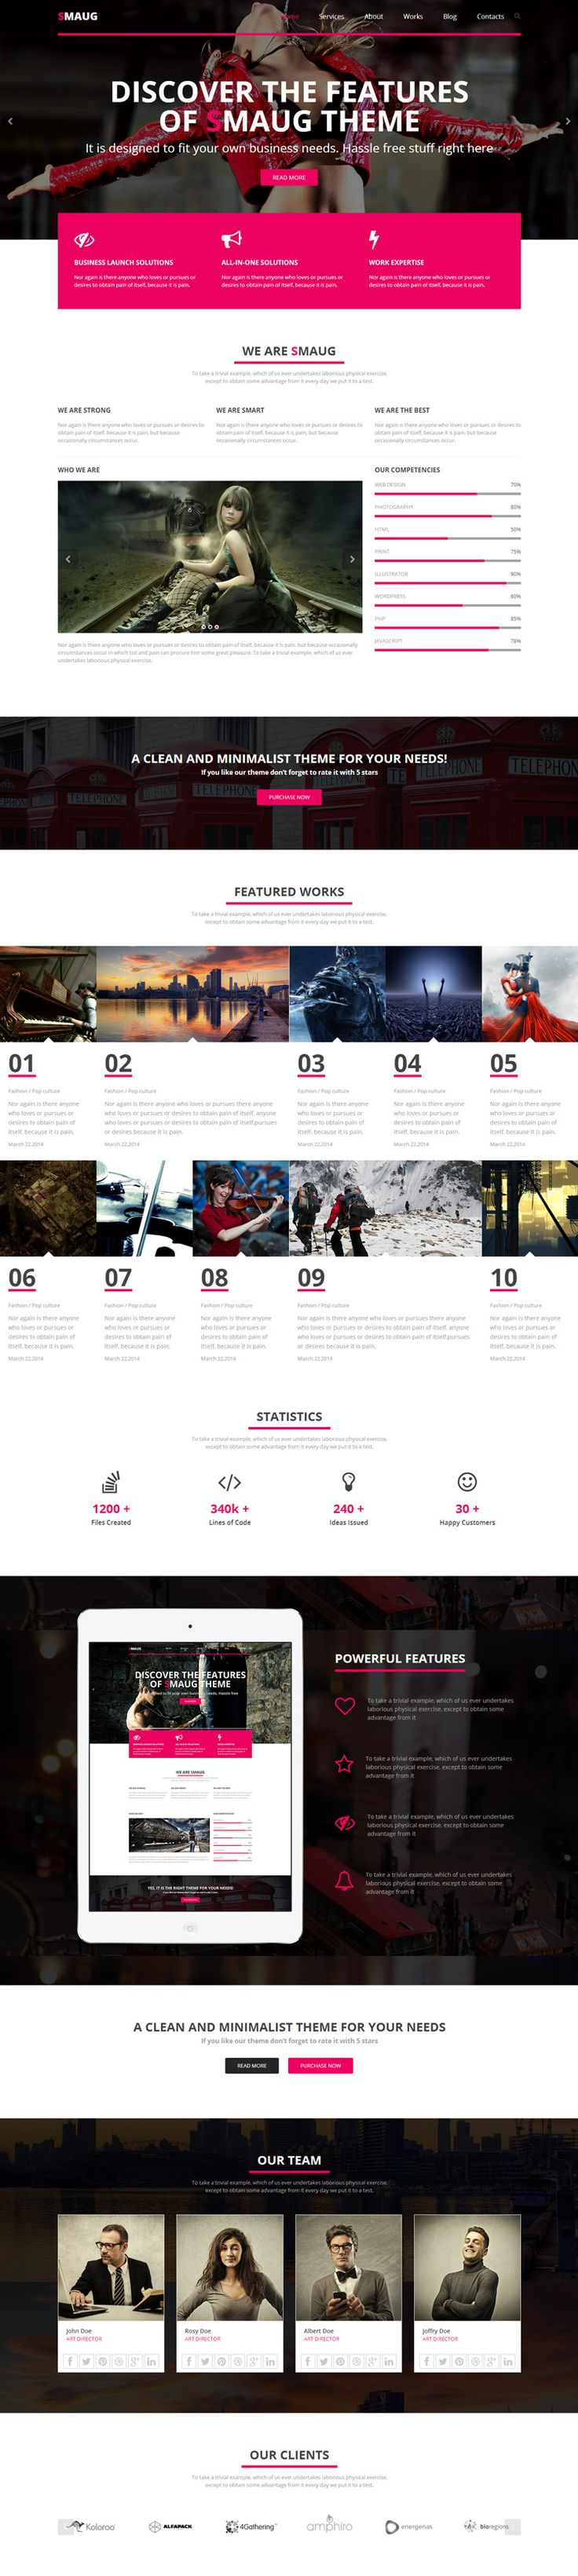 Bootstrap HTML5 CSS3 Template - Smaug - WP Mustache